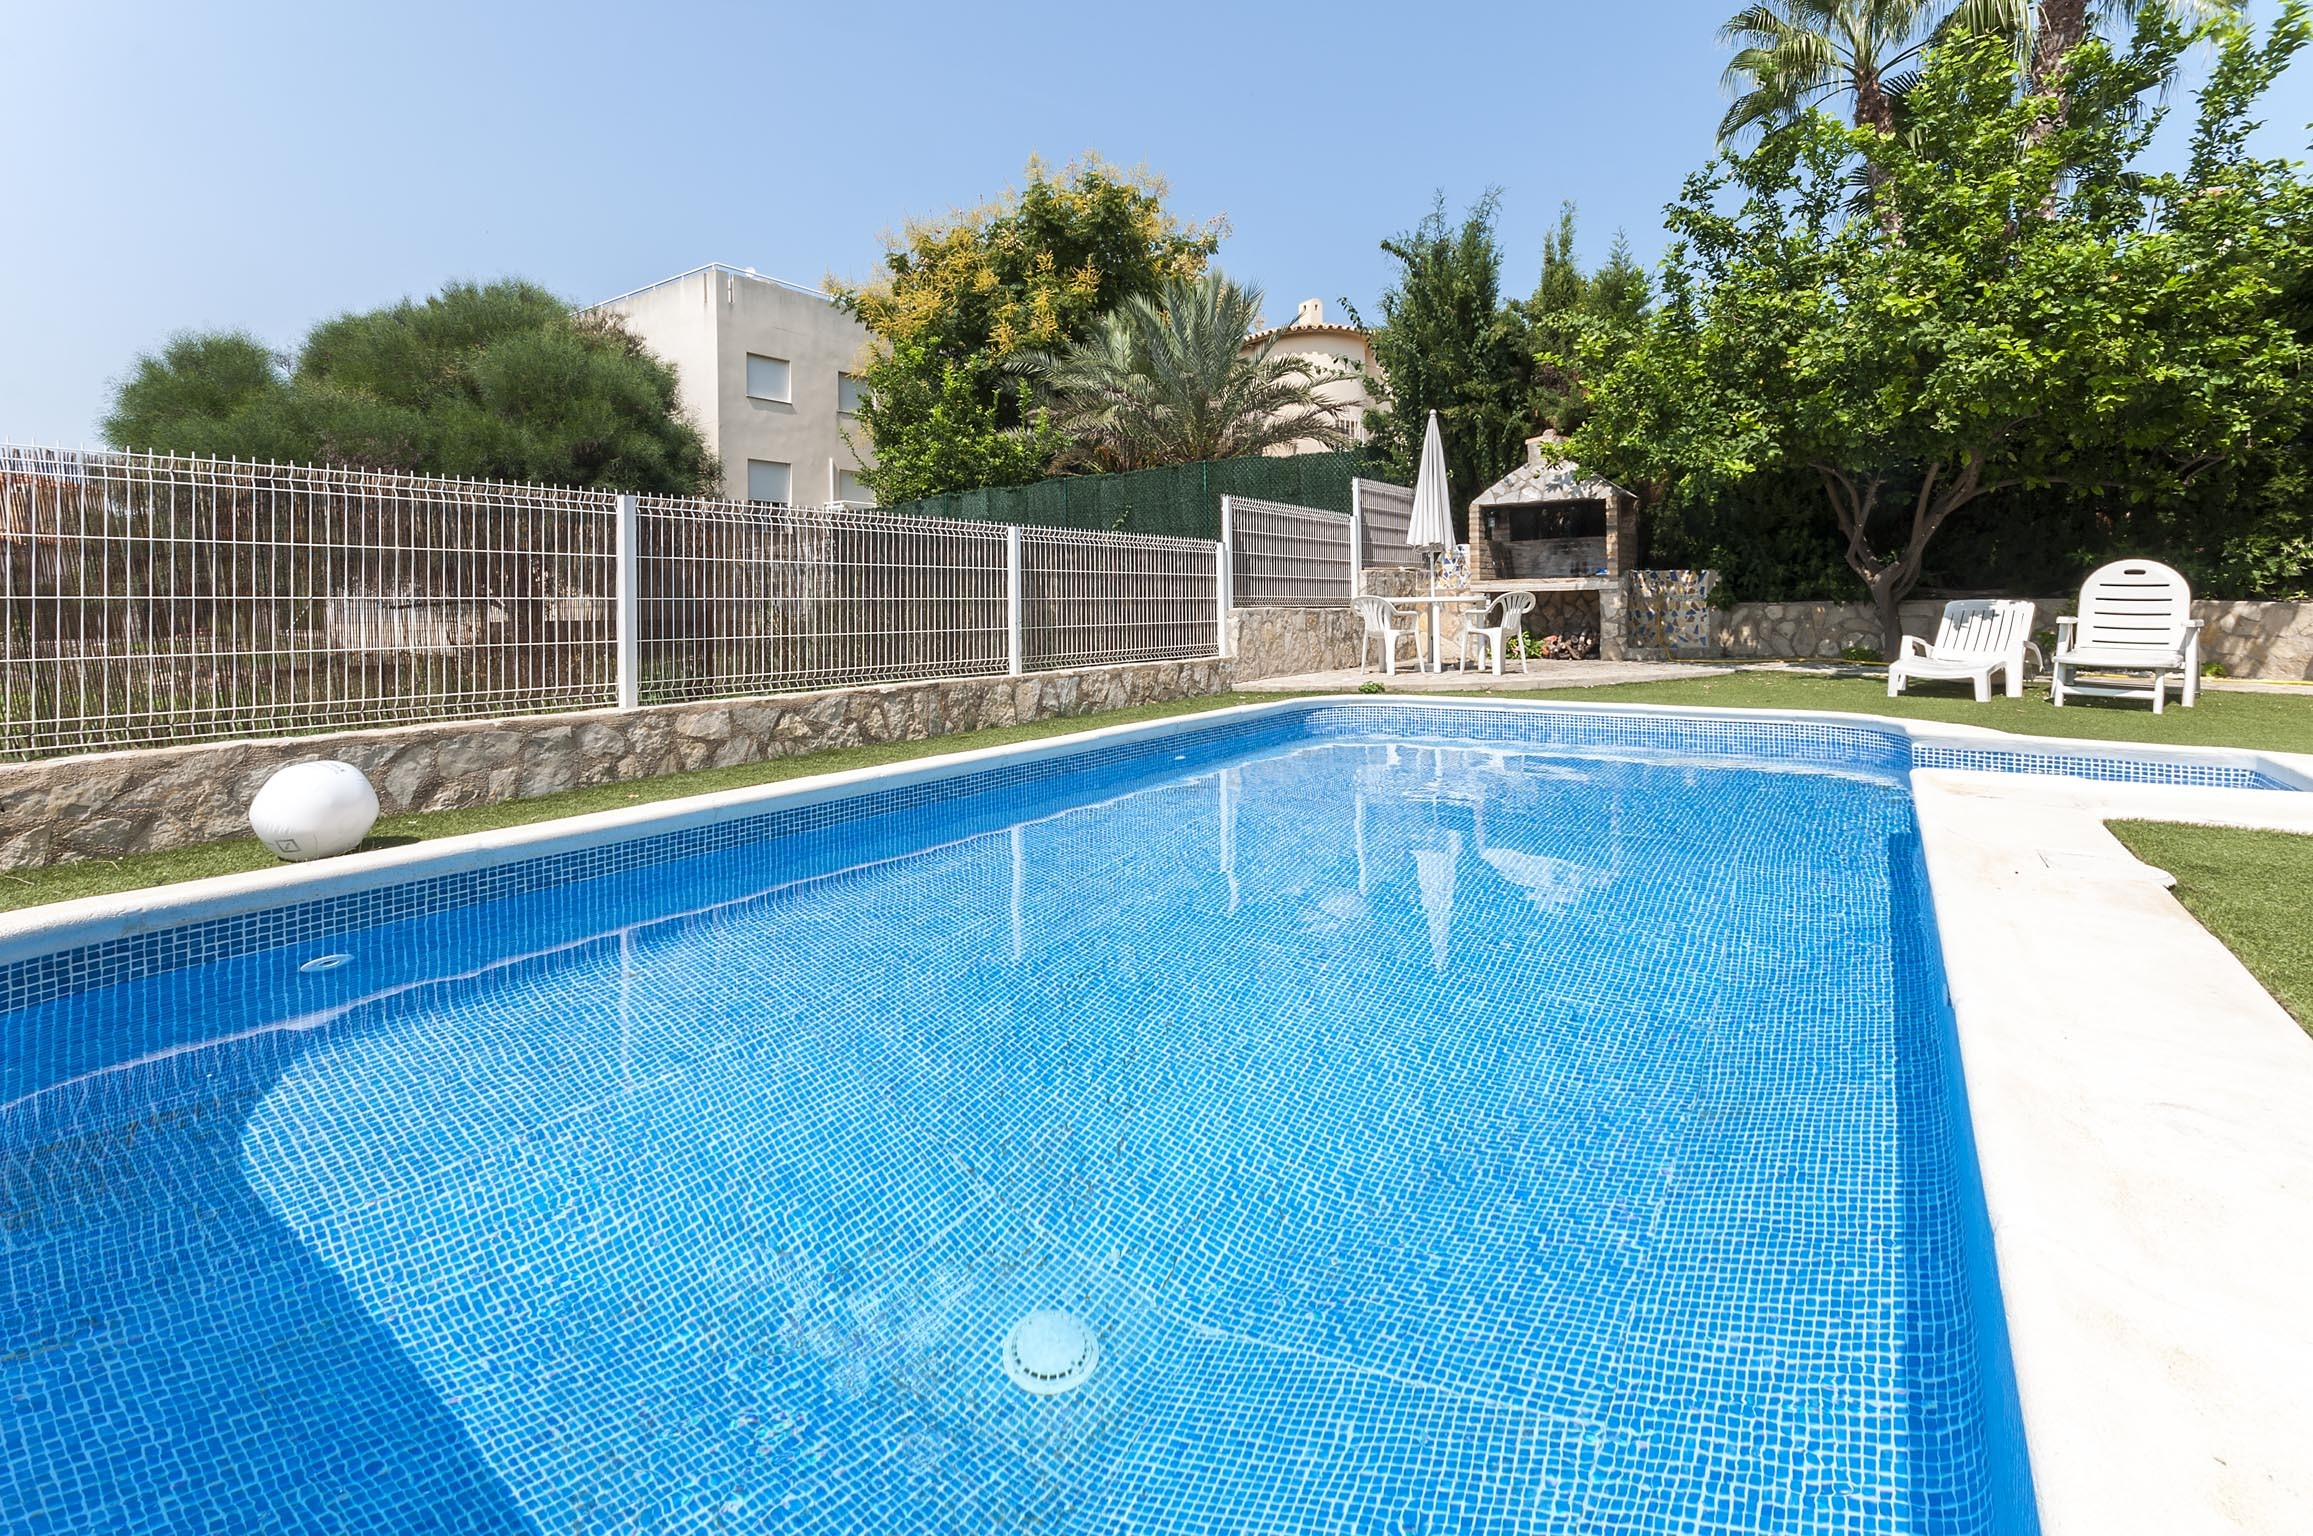 Set Just A Stones Throw From Oliva Nova Beach, This Apartment Has Access To  A Shared Pool And Is Ideal For 6 People. The Exteriors Features A Shared,  ...